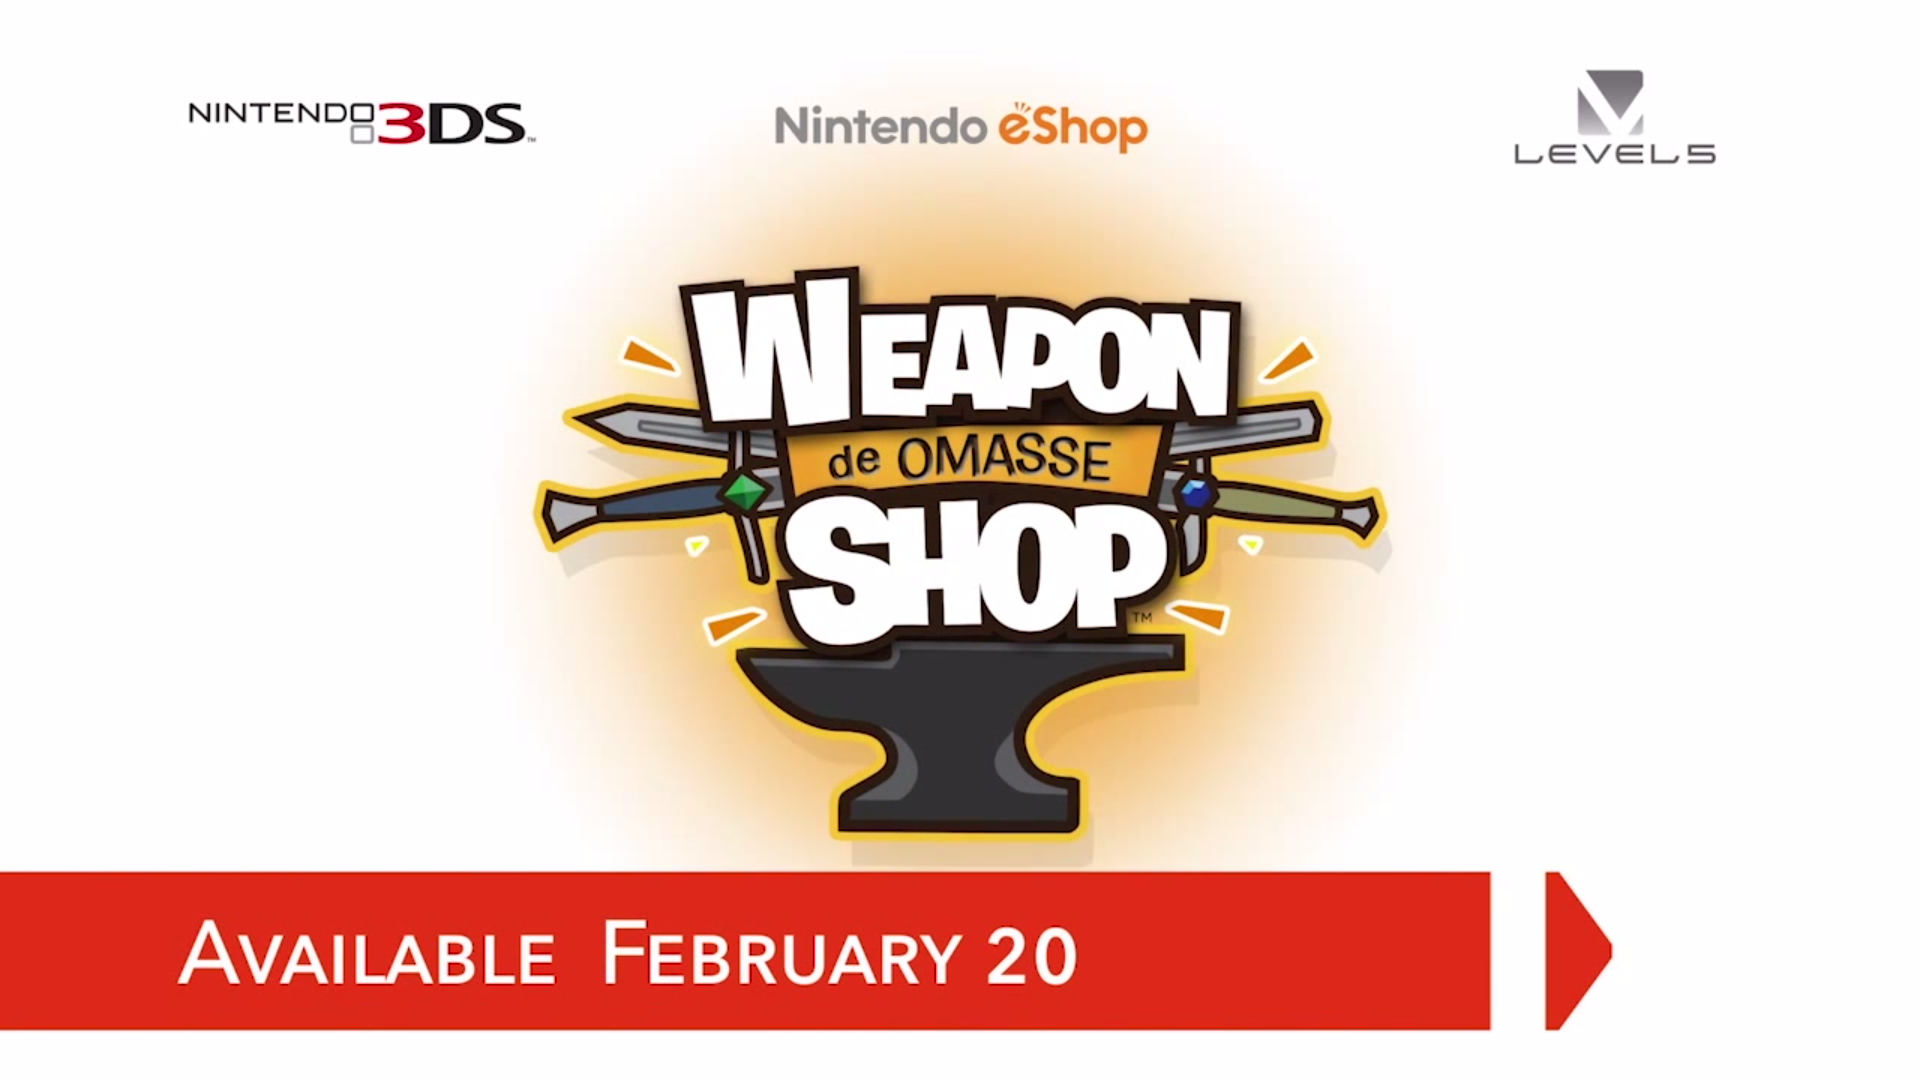 Weapon Shop de Omasse launches February 20th